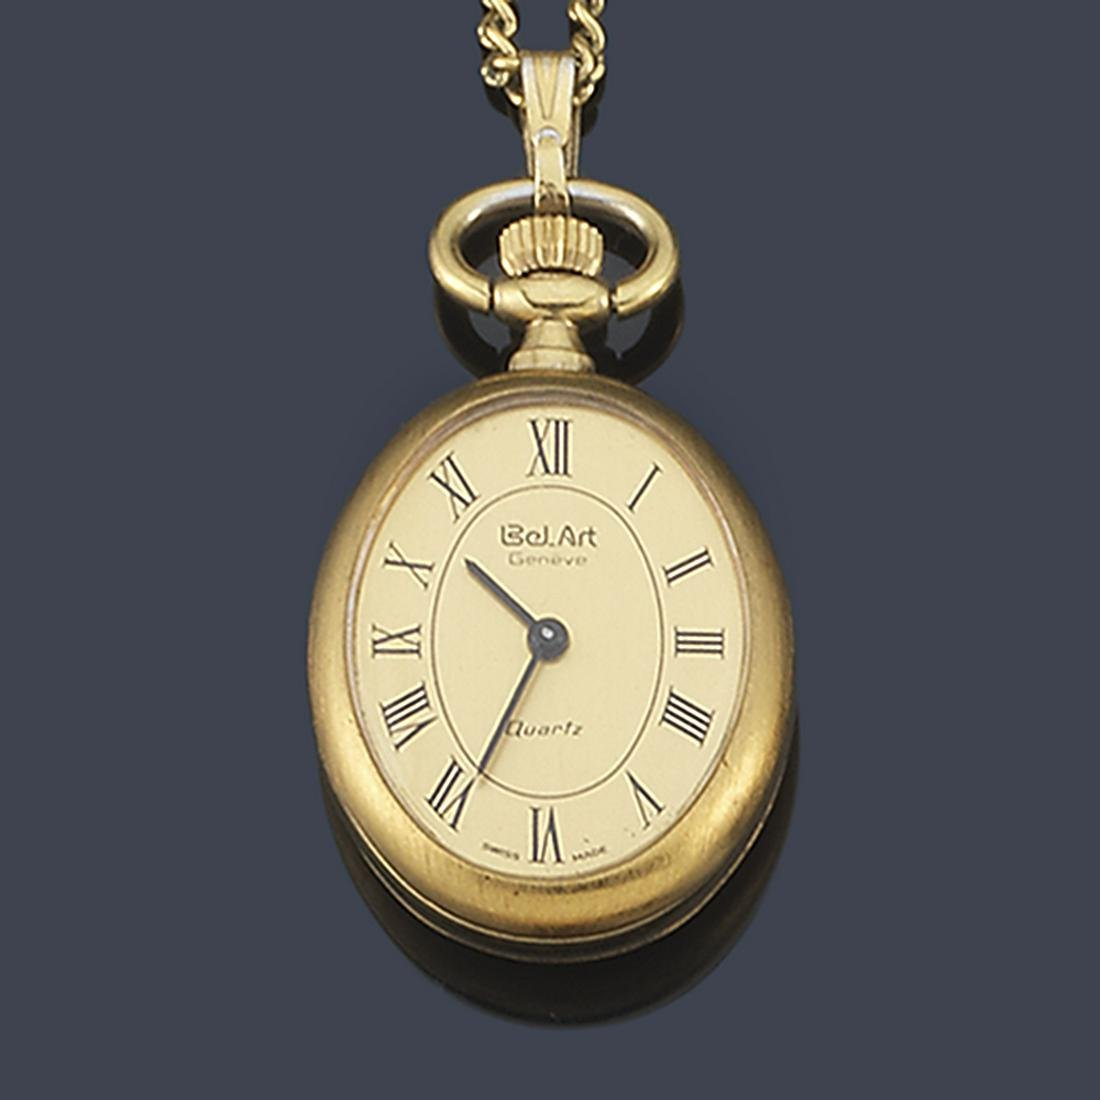 BELT ART hanging watch with gold plated chain.